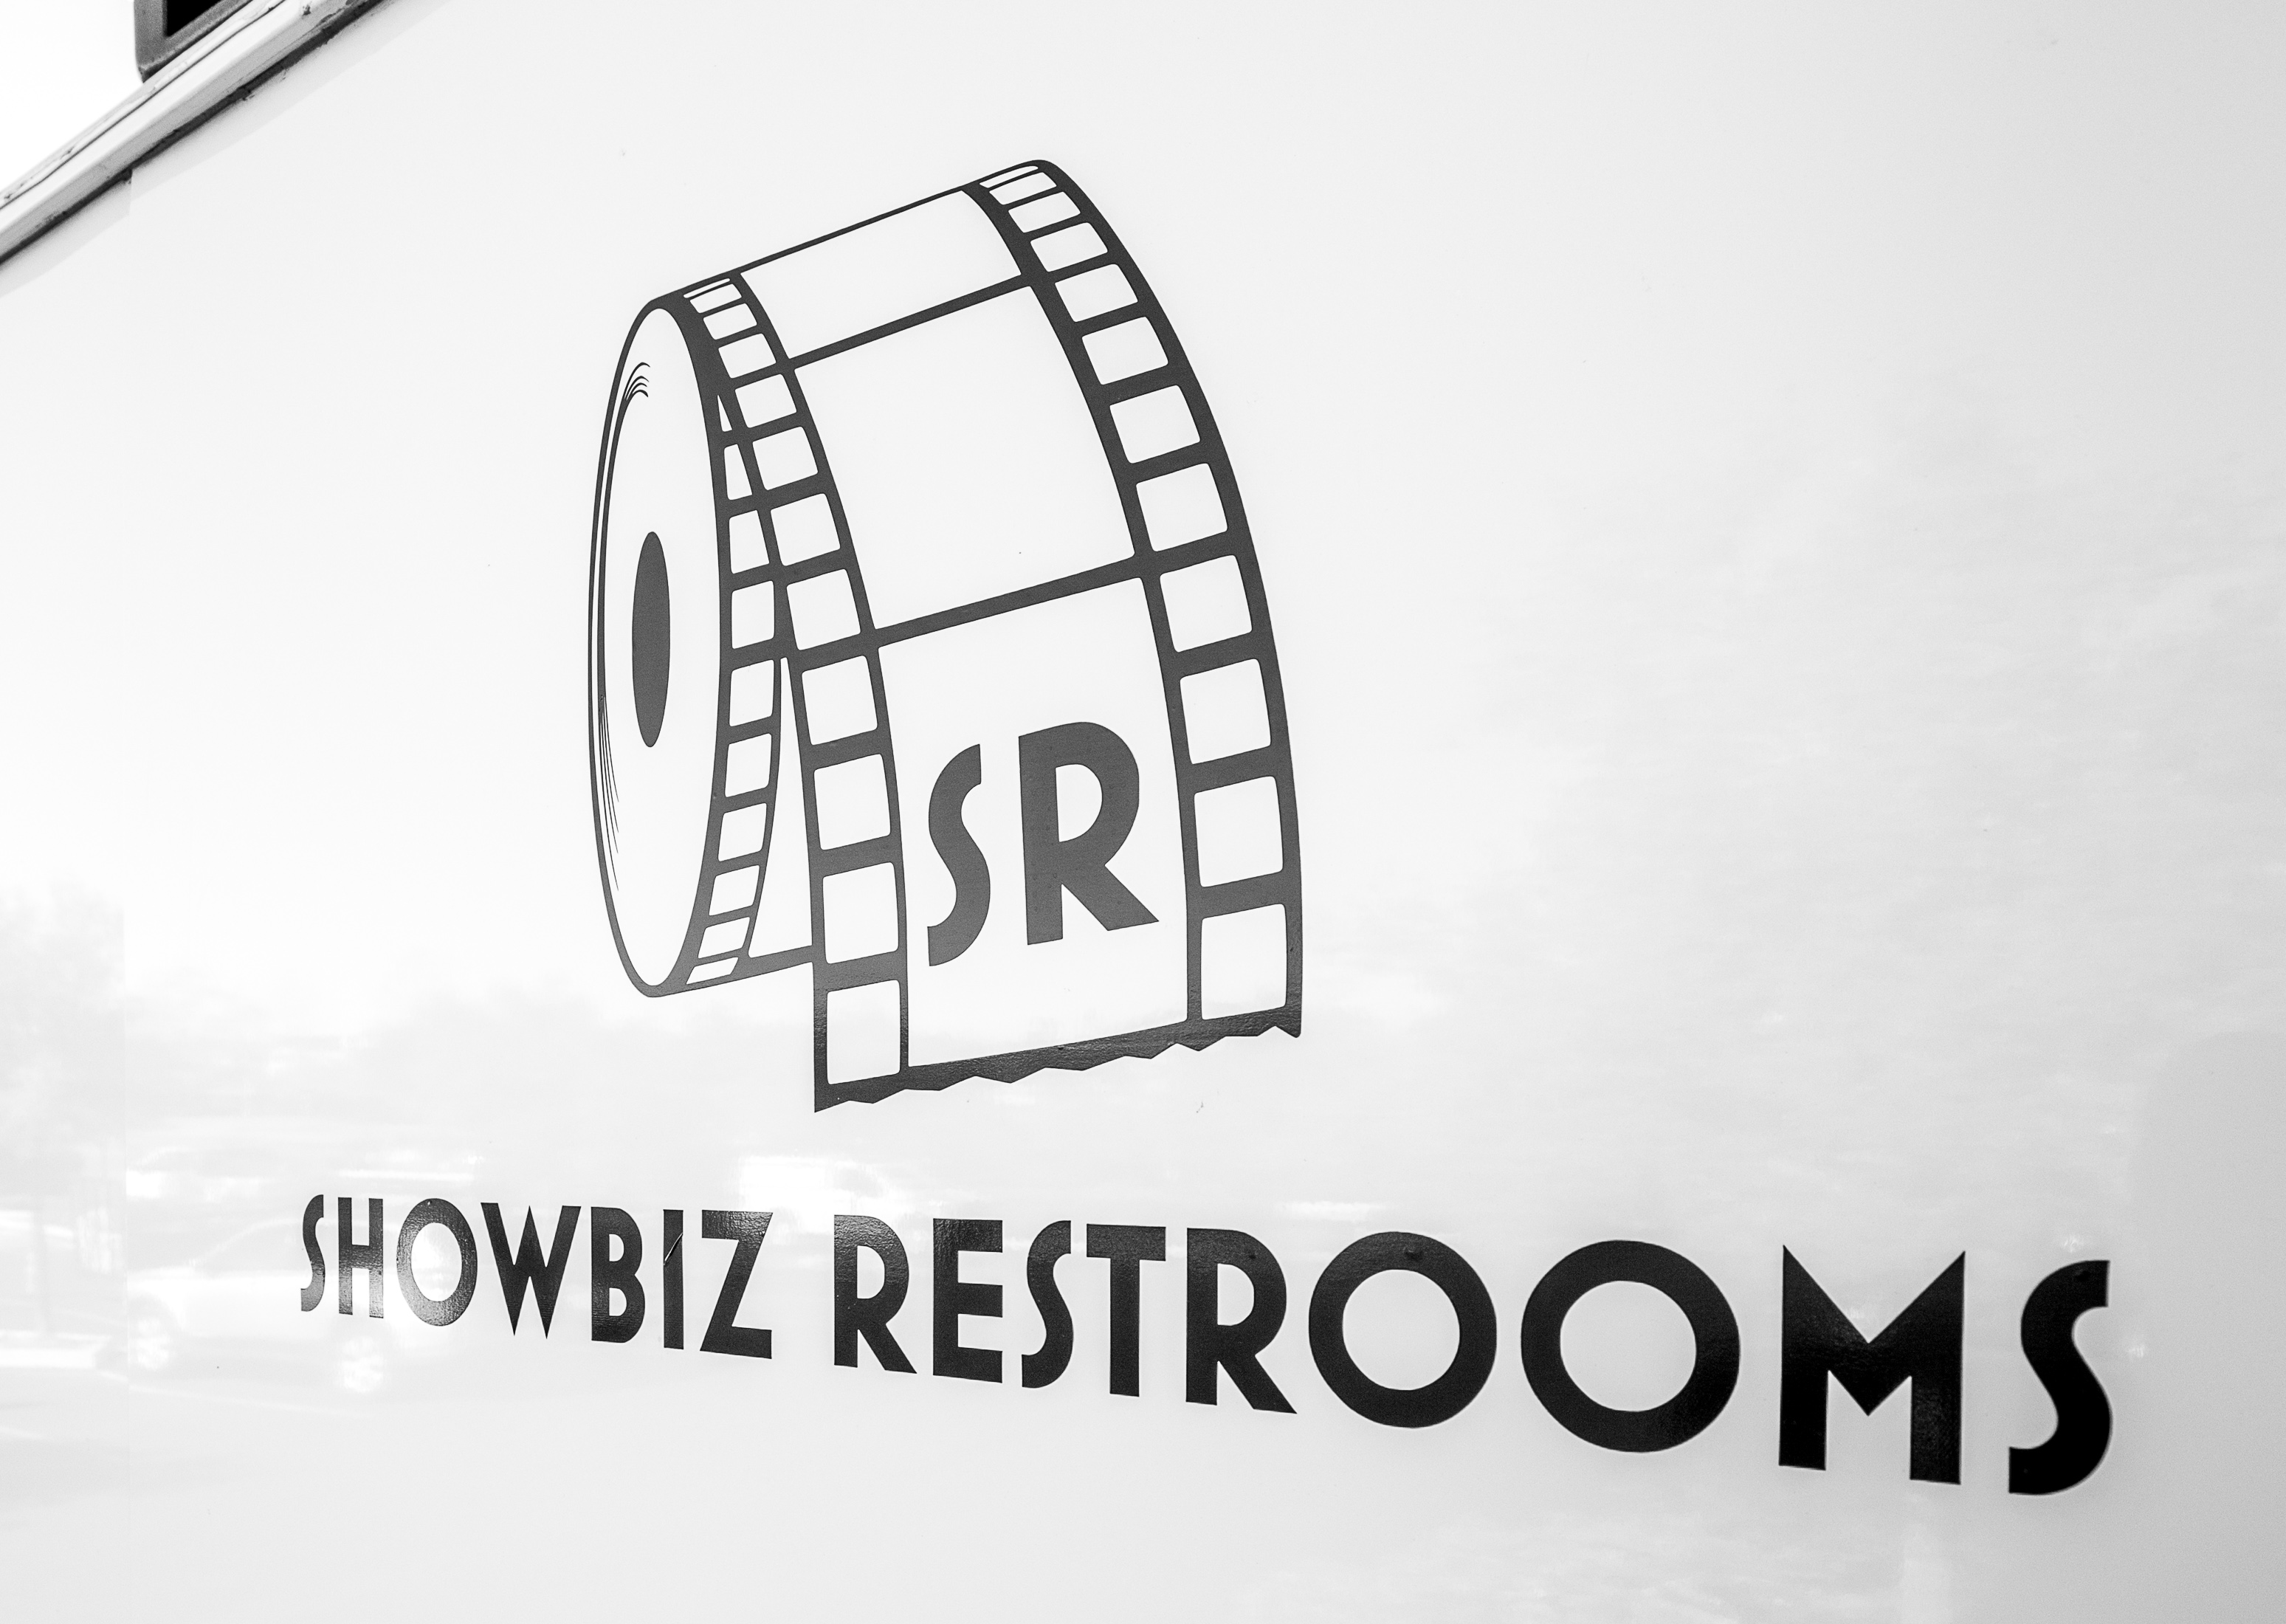 Showbiz Restrooms